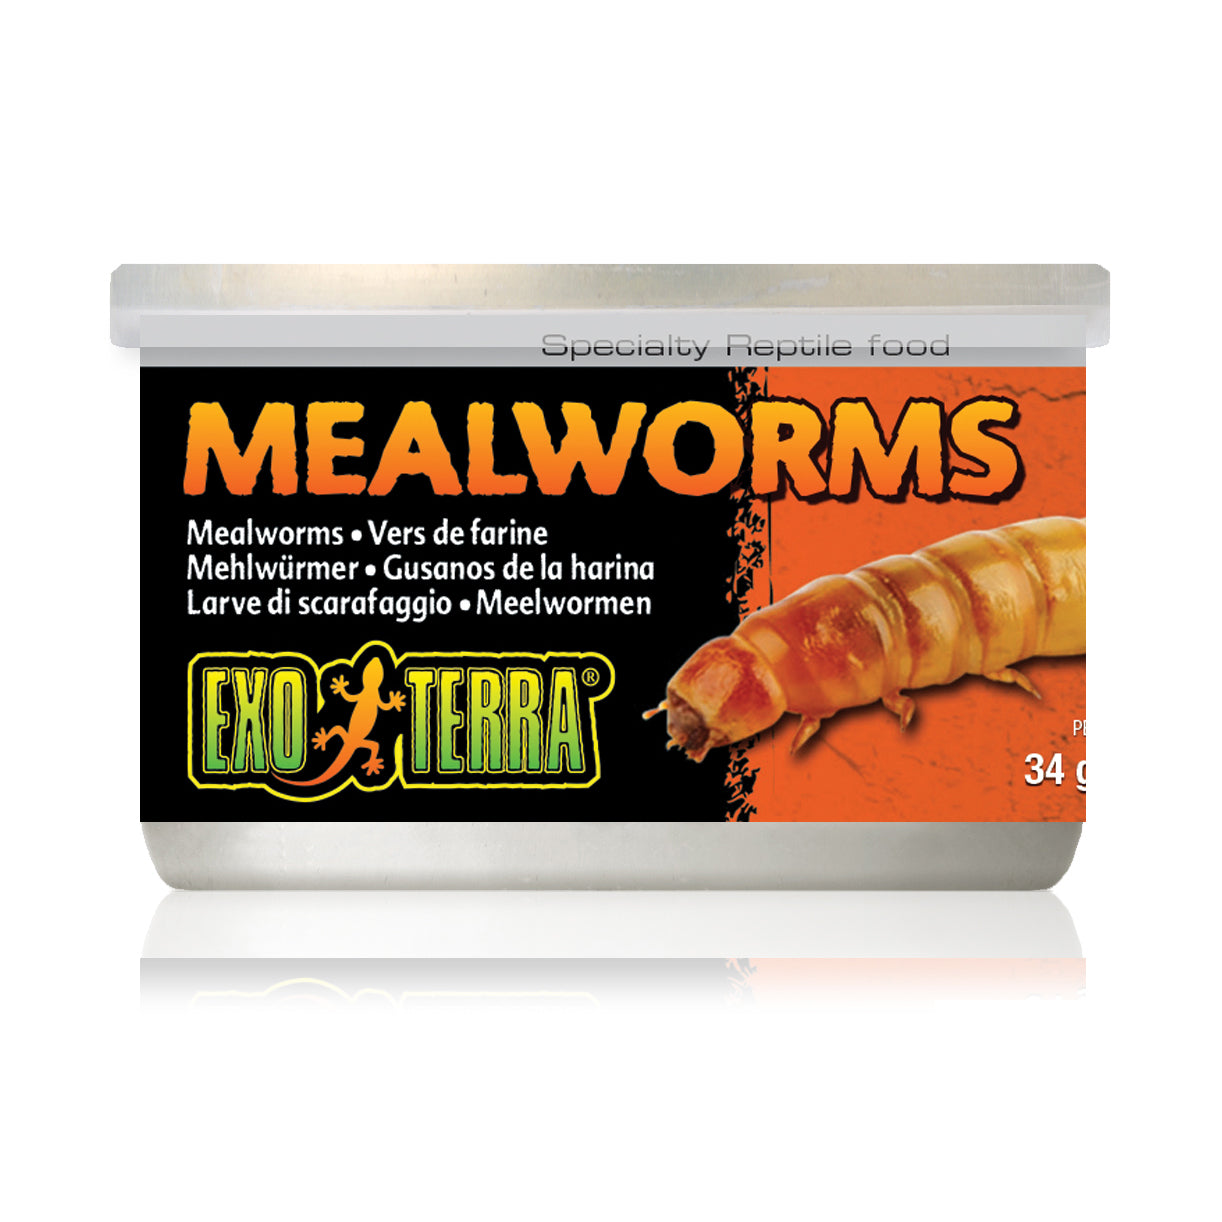 Exo Terra Mealworms Canned